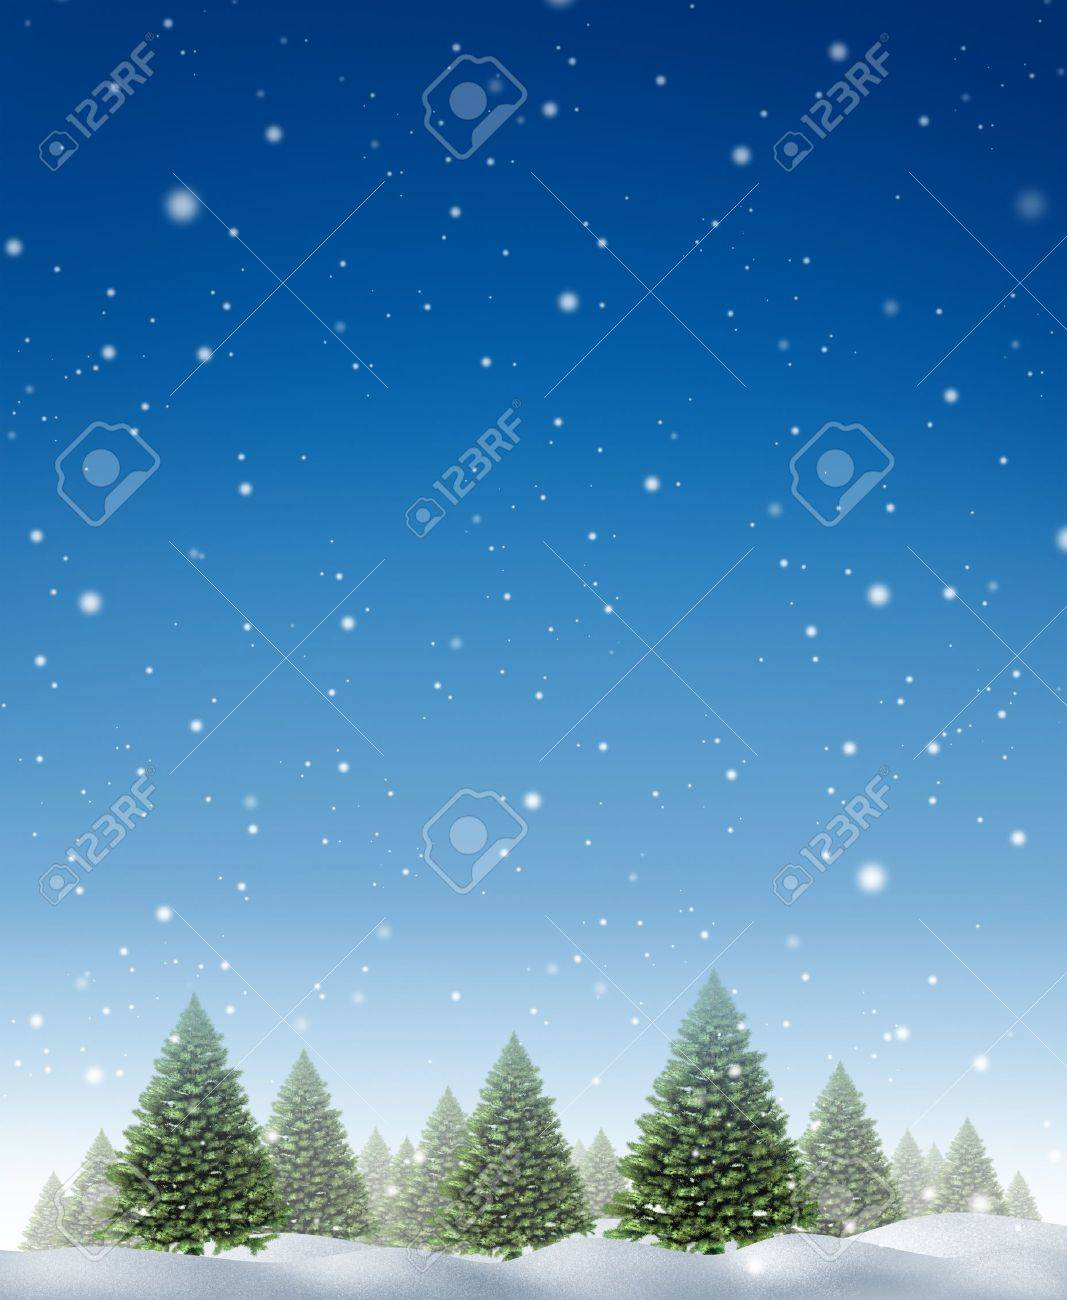 Winter holiday background with a cold forest of pine trees on a snowing blue night fall sky as a design element for the Christmas season and the festive celebration of the time of giving Stock Photo - 15845972